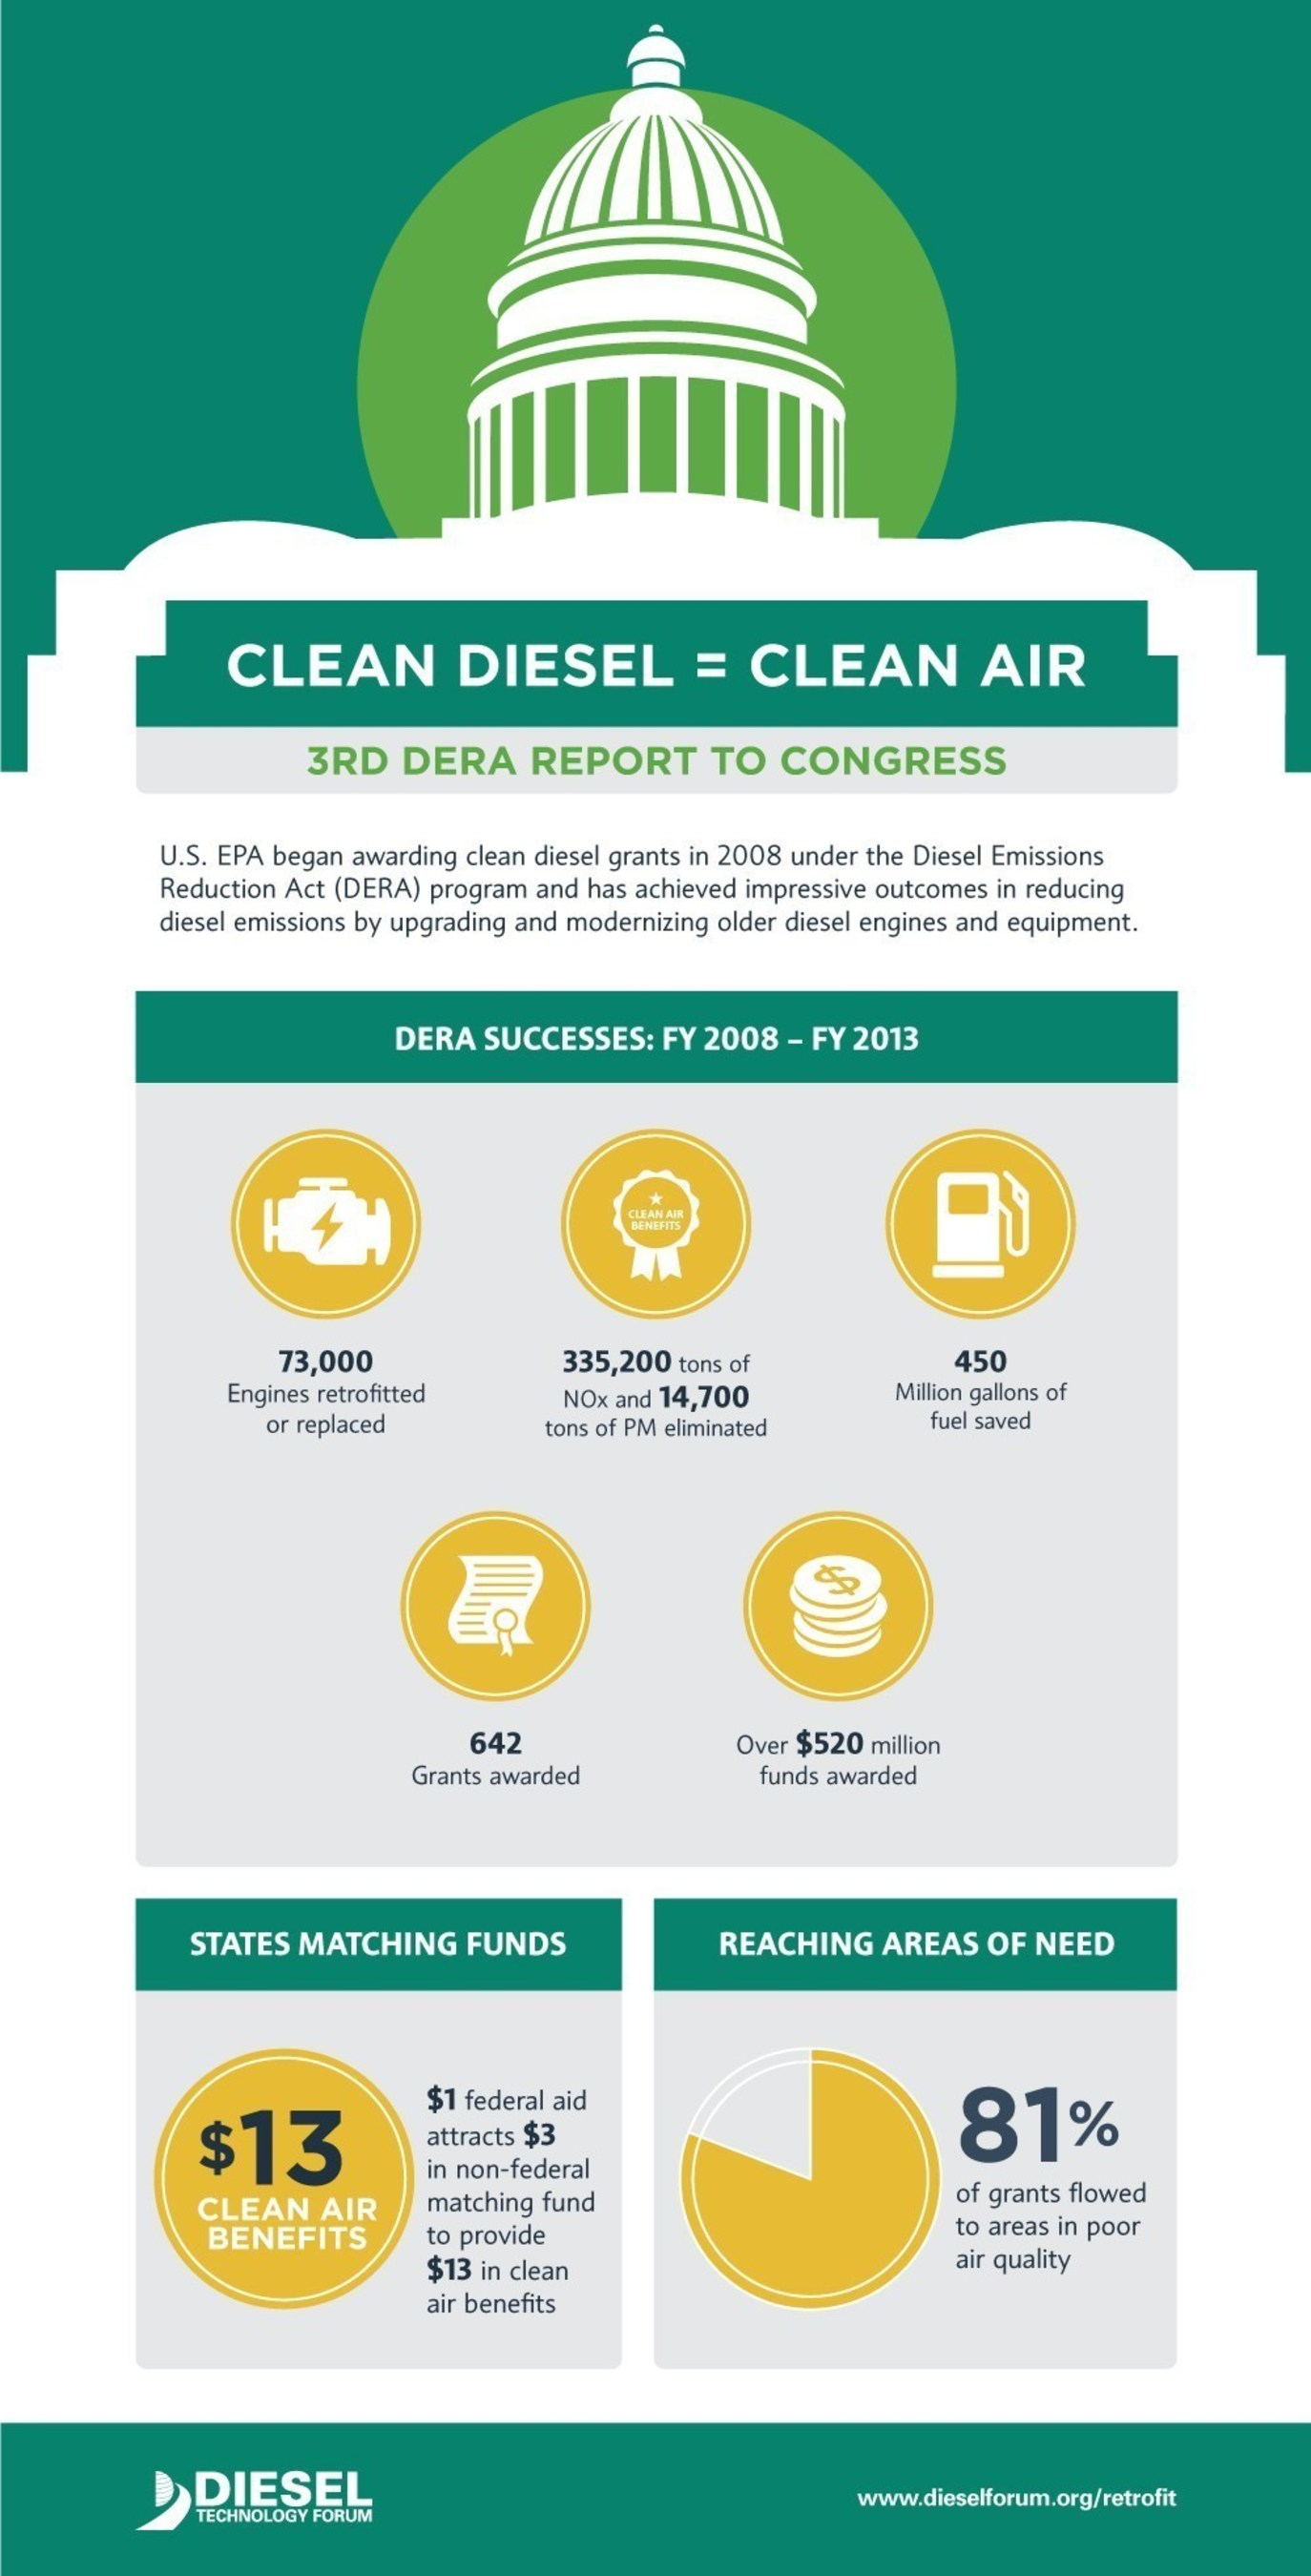 The Diesel Emission Reduction Act (DERA) has funded the modernization and upgrades of more than 73,000 diesel engines resulting in major clean air benefits and fuel savings in communities throughout all 50 states.  While new diesel technology and fuels now achieve near zero emission levels, DERA is the leading program that reduces emissions in the older diesel legacy engines.